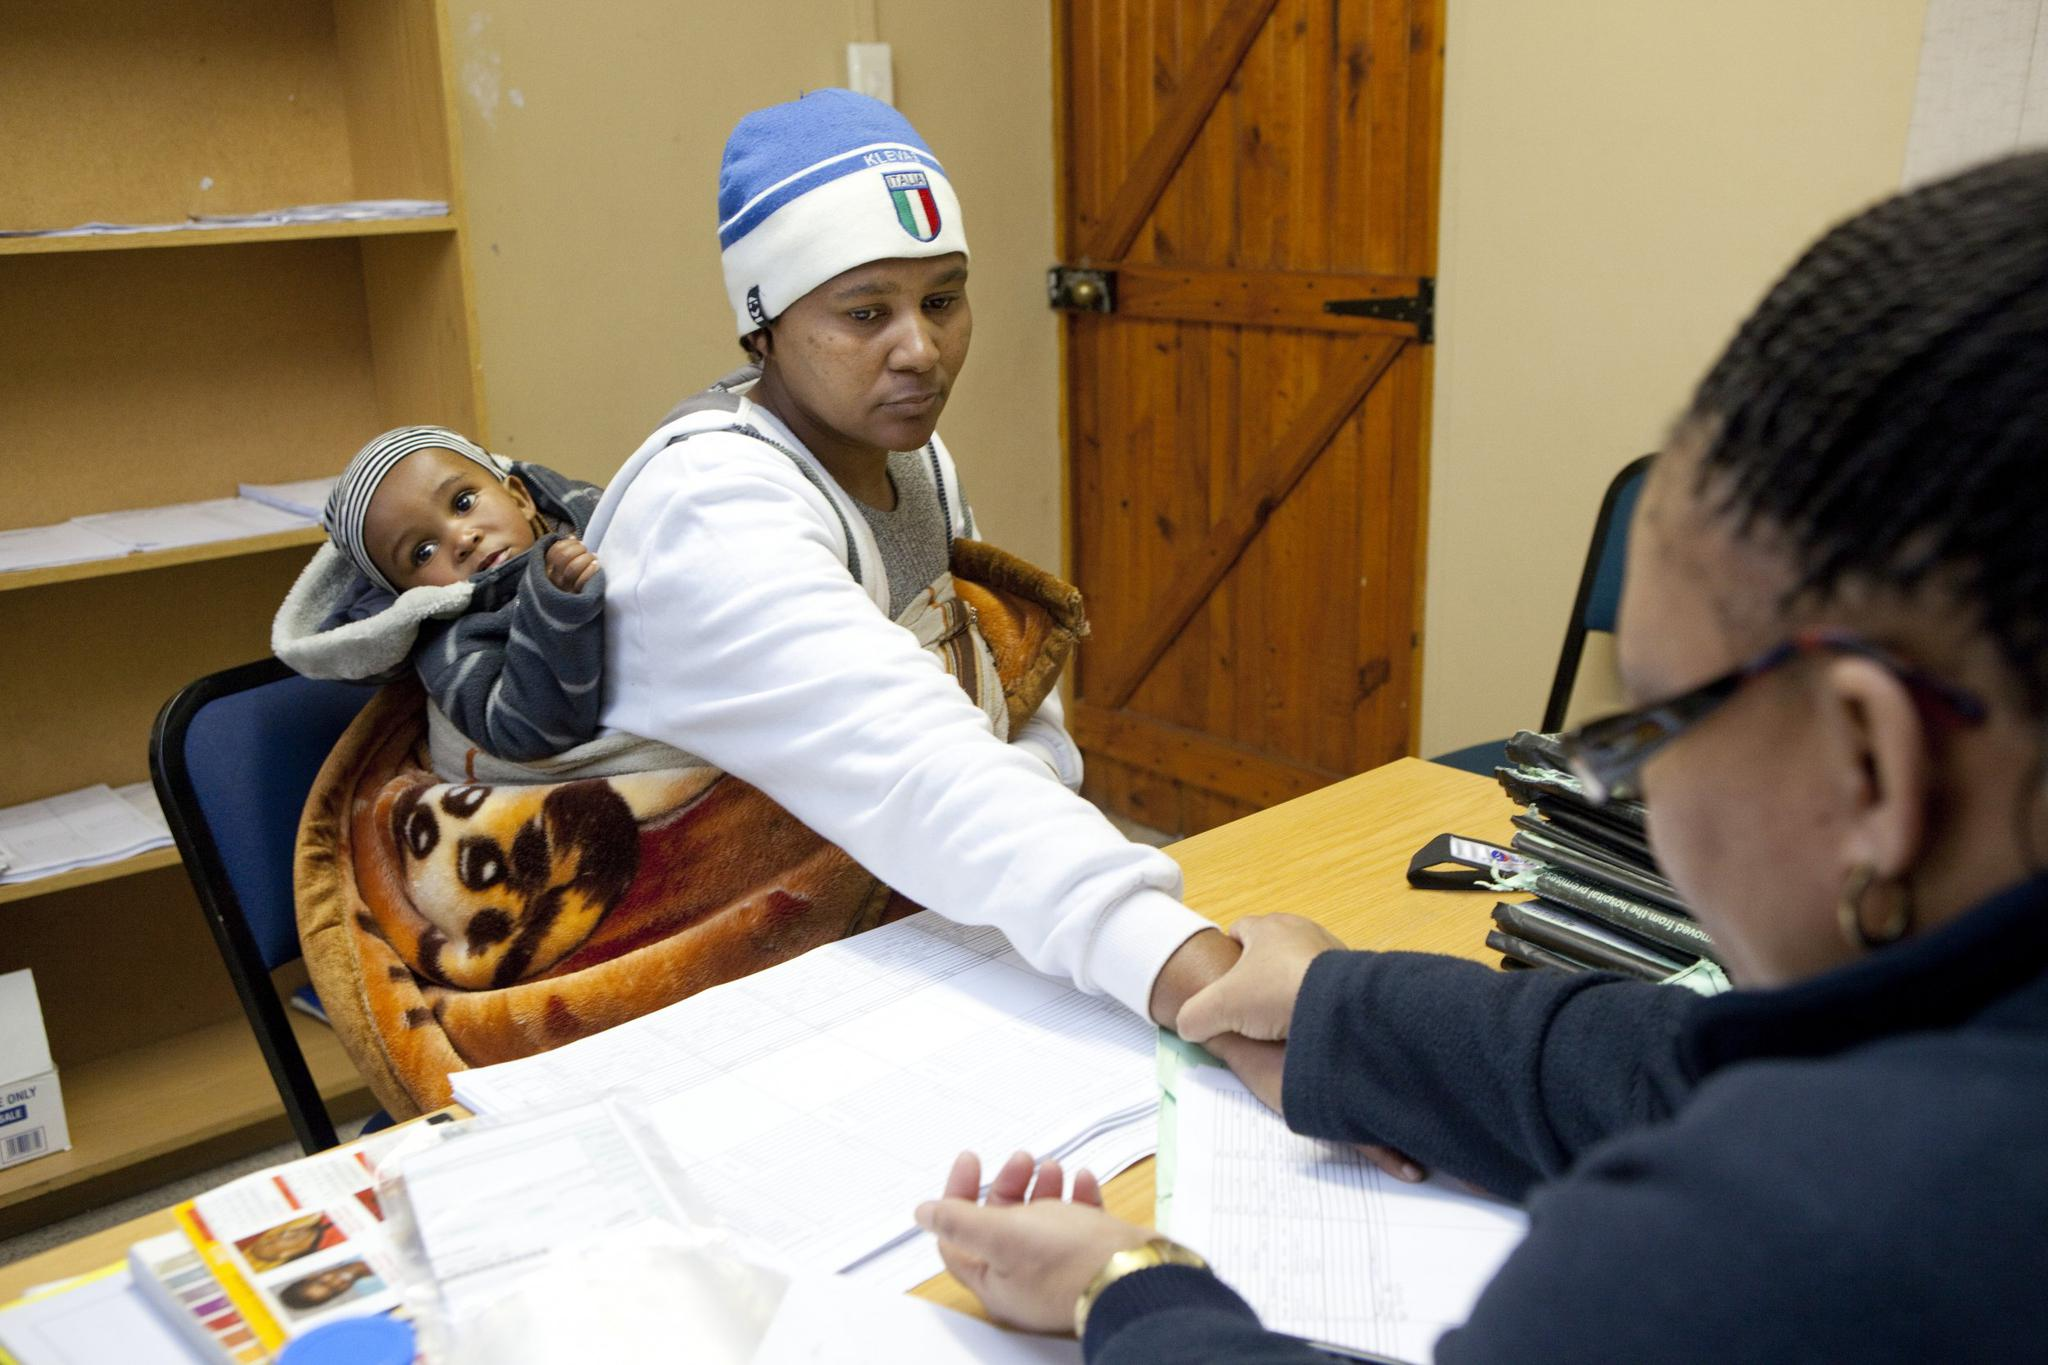 A woman who was diagnosed with the HIV virus has her heart rate checked during a consult with a nurse at Ubuntu Clinic on June 3, 2013 in Cape Town, South Africa. She is a member of a support group, called an adherence club, for stable patients.